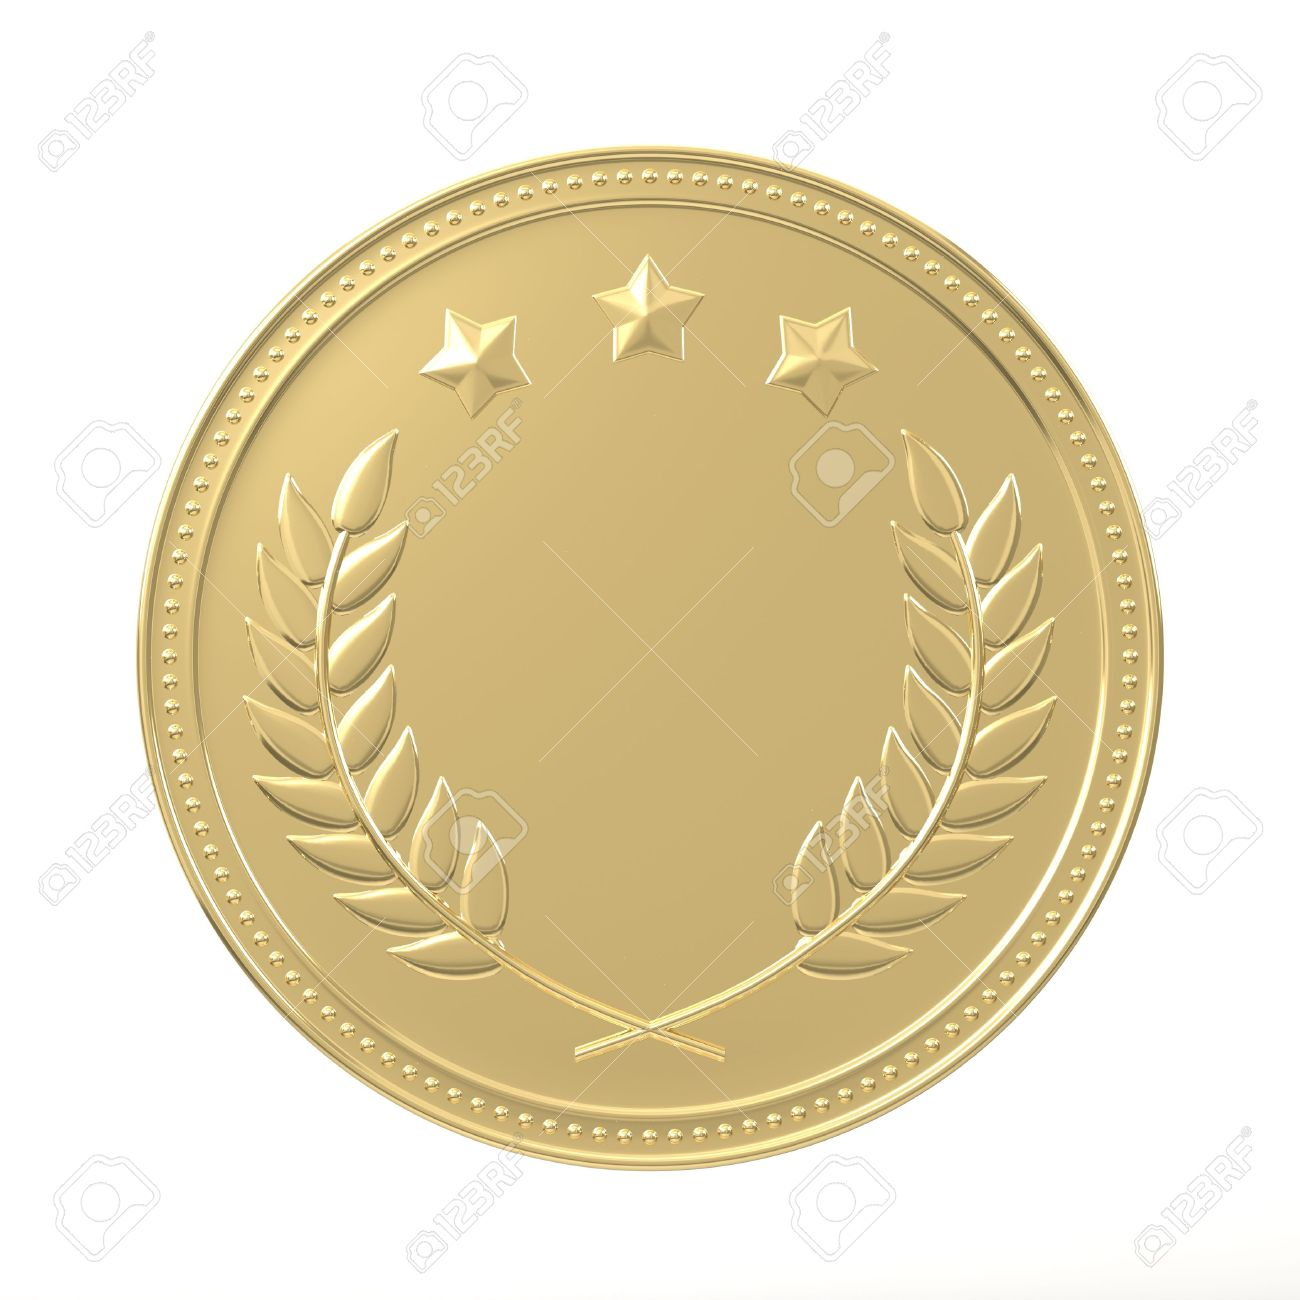 Gold Medal With Laurels And Stars Round Blank Coin With Ornaments Stock Photo Picture And Royalty Free Image Image 42101211